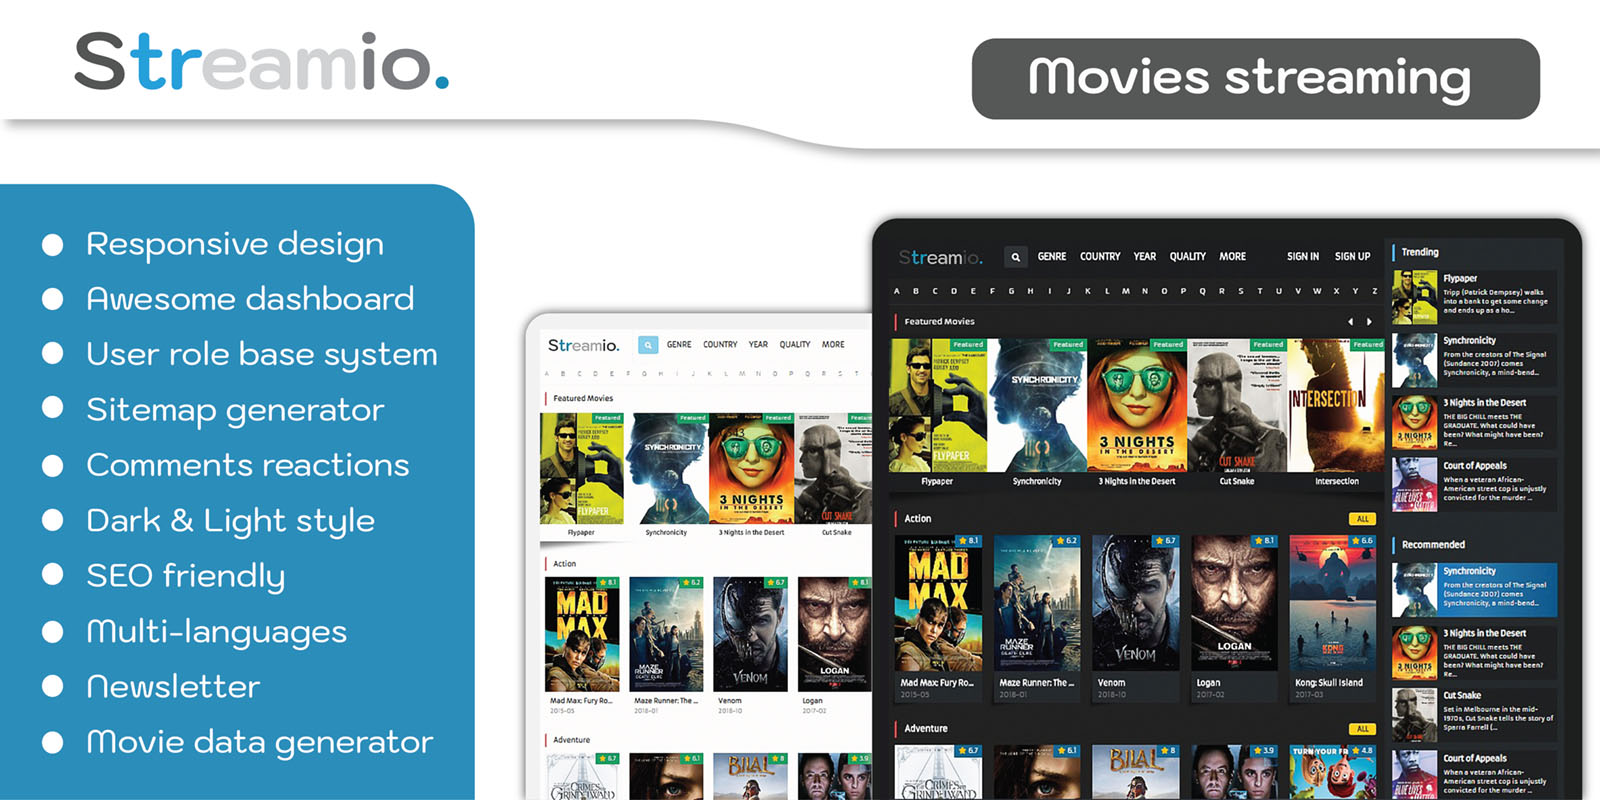 Streamio - Movies streaming PHP script